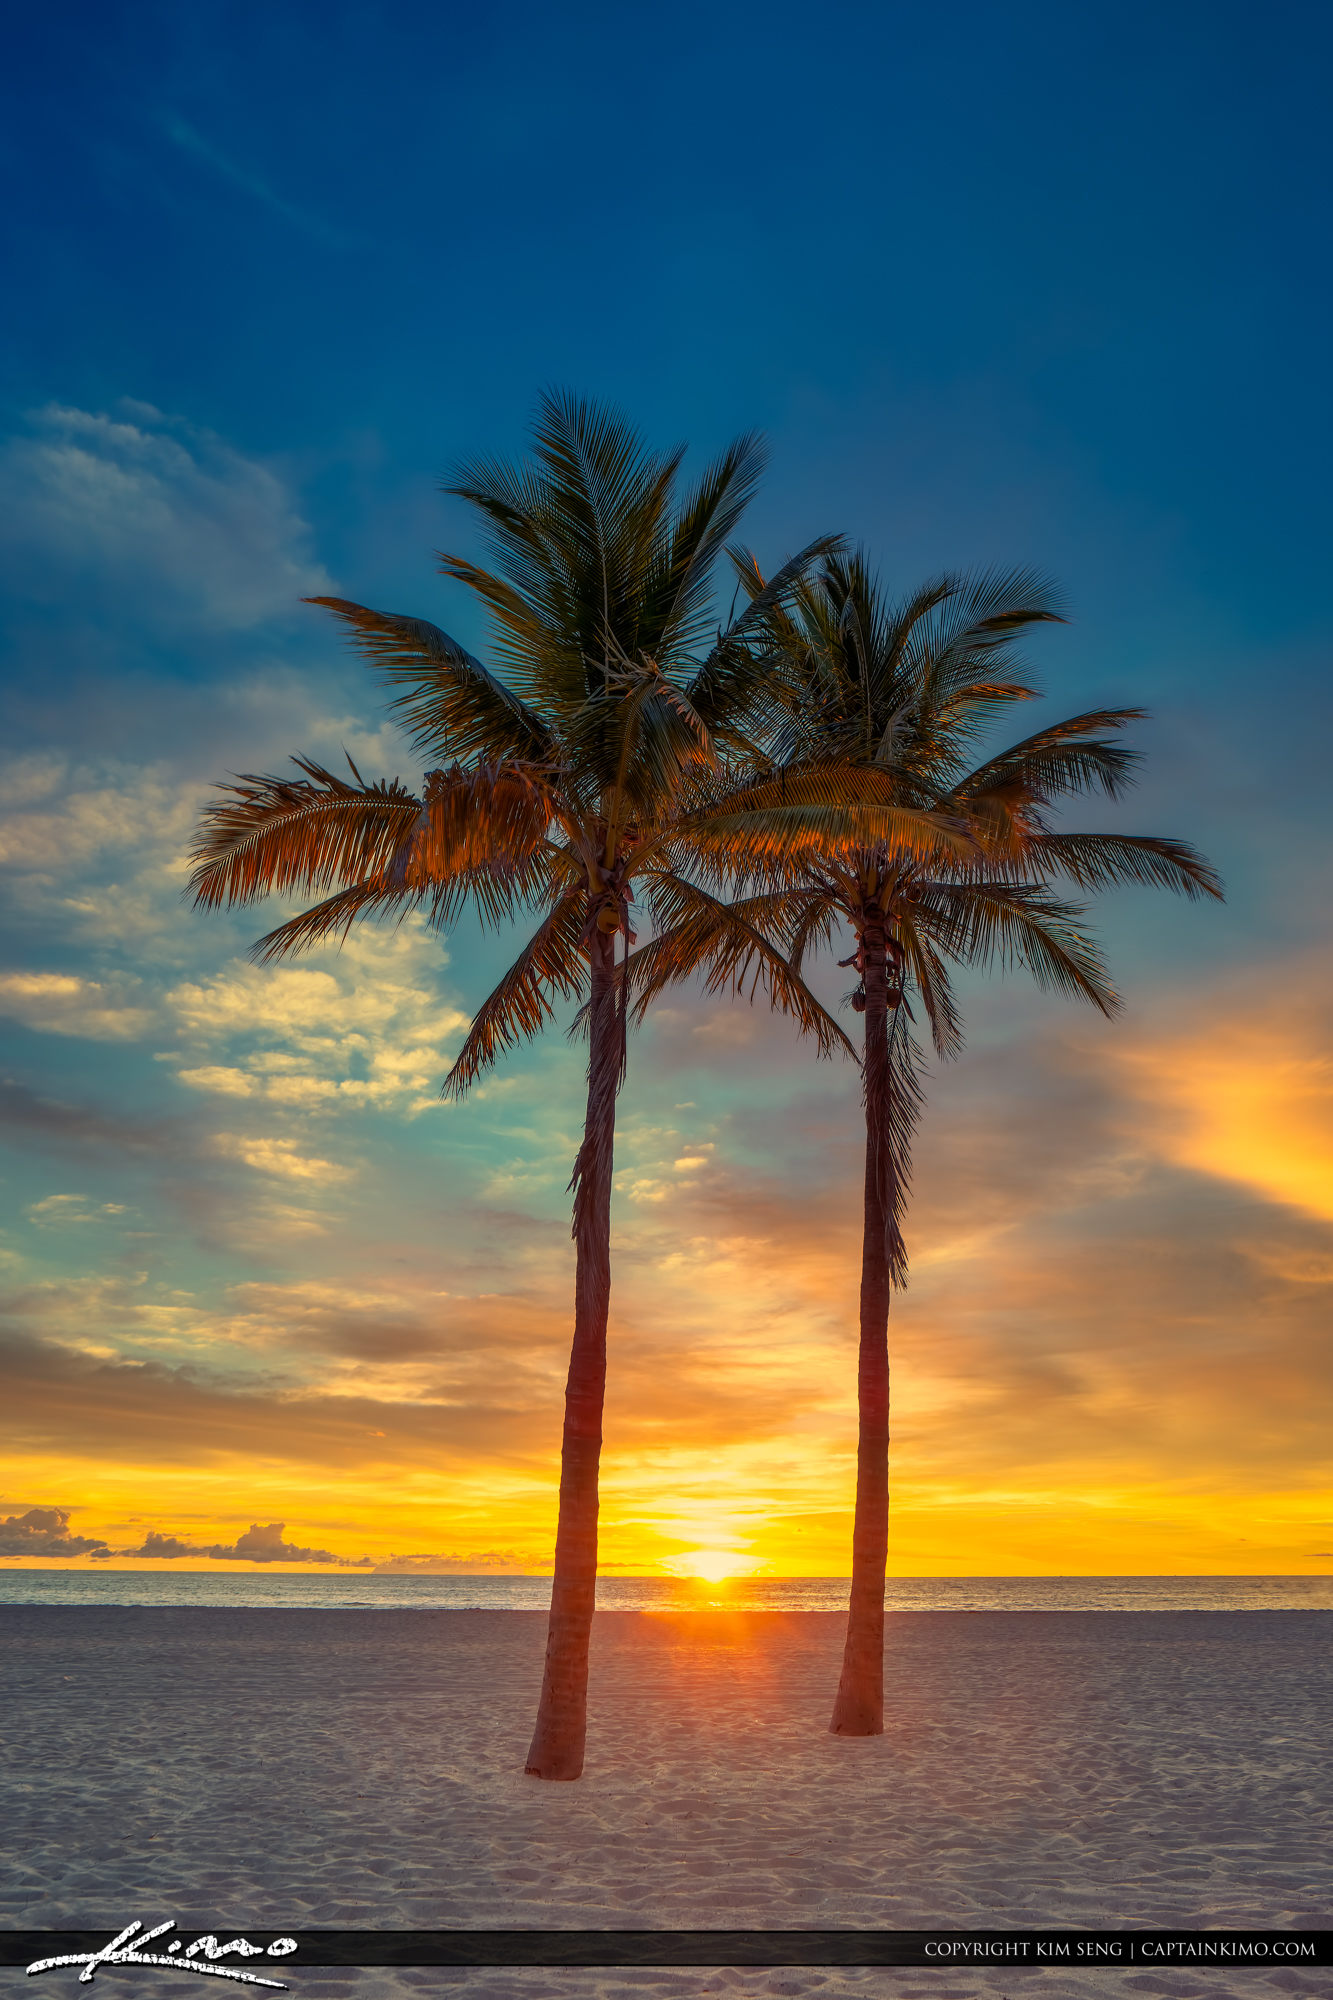 Two Coconut Palm Tree Sunrise at Beach